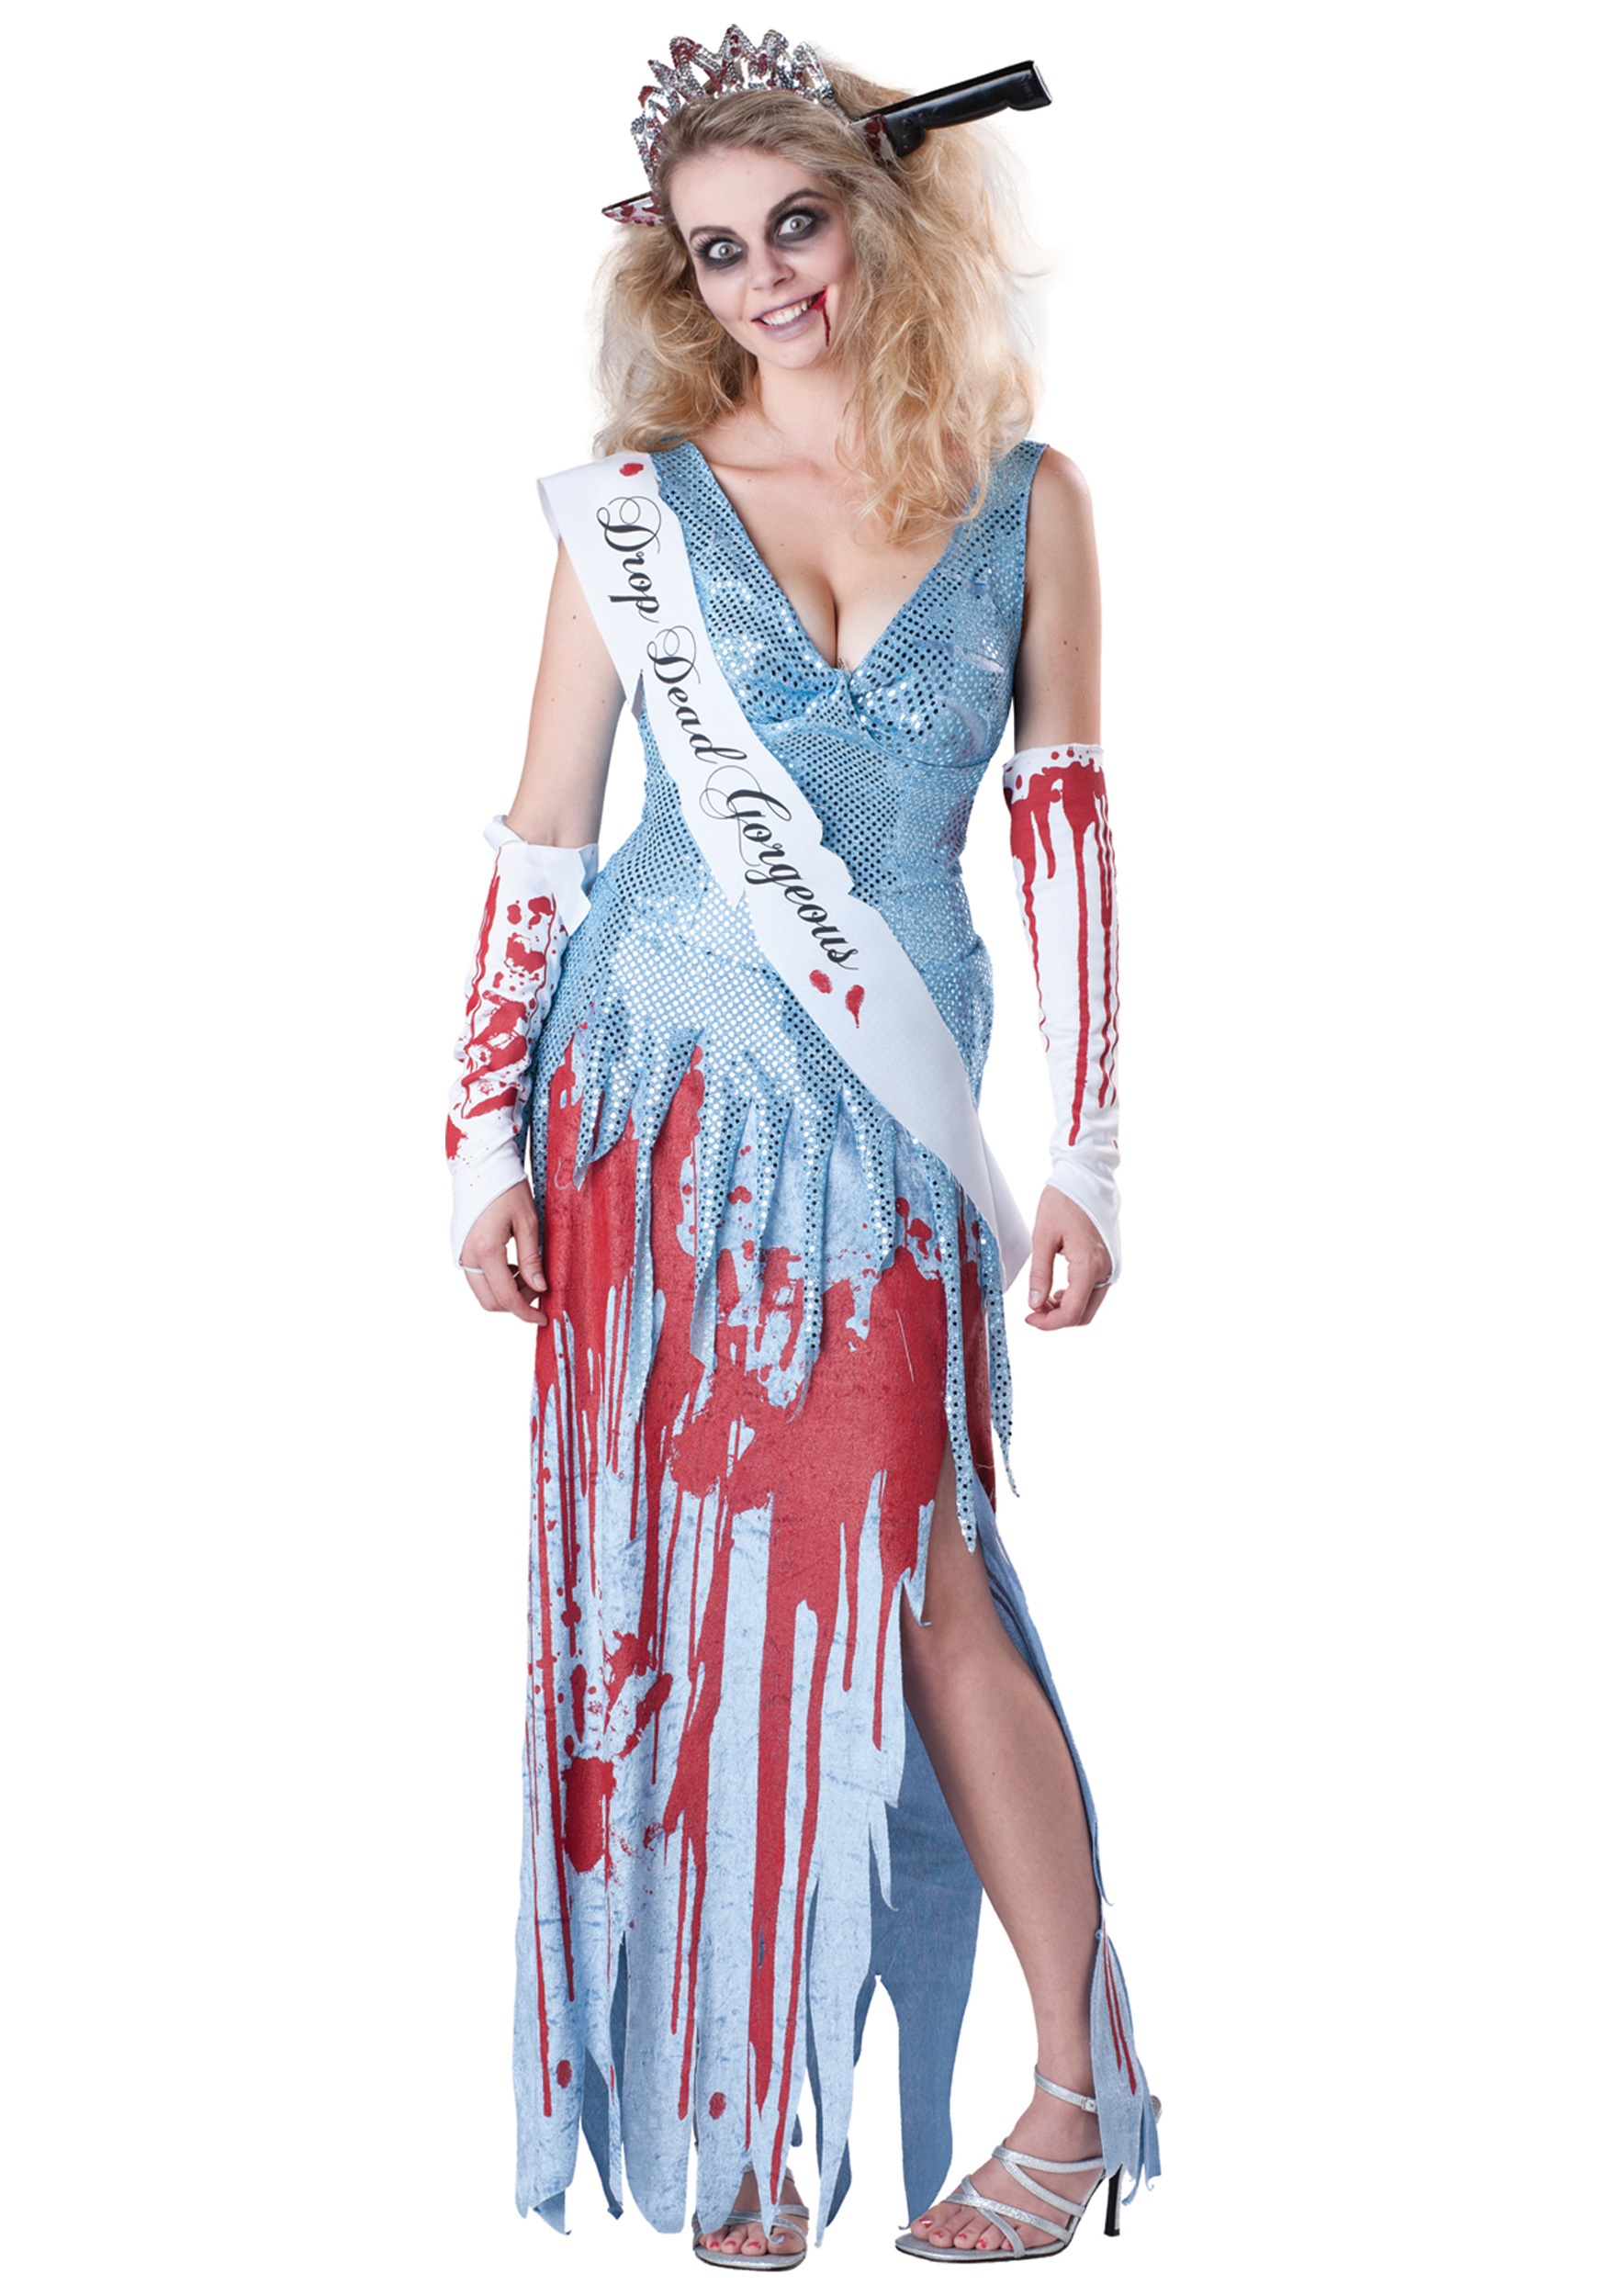 Drop Dead Prom Queen Costume